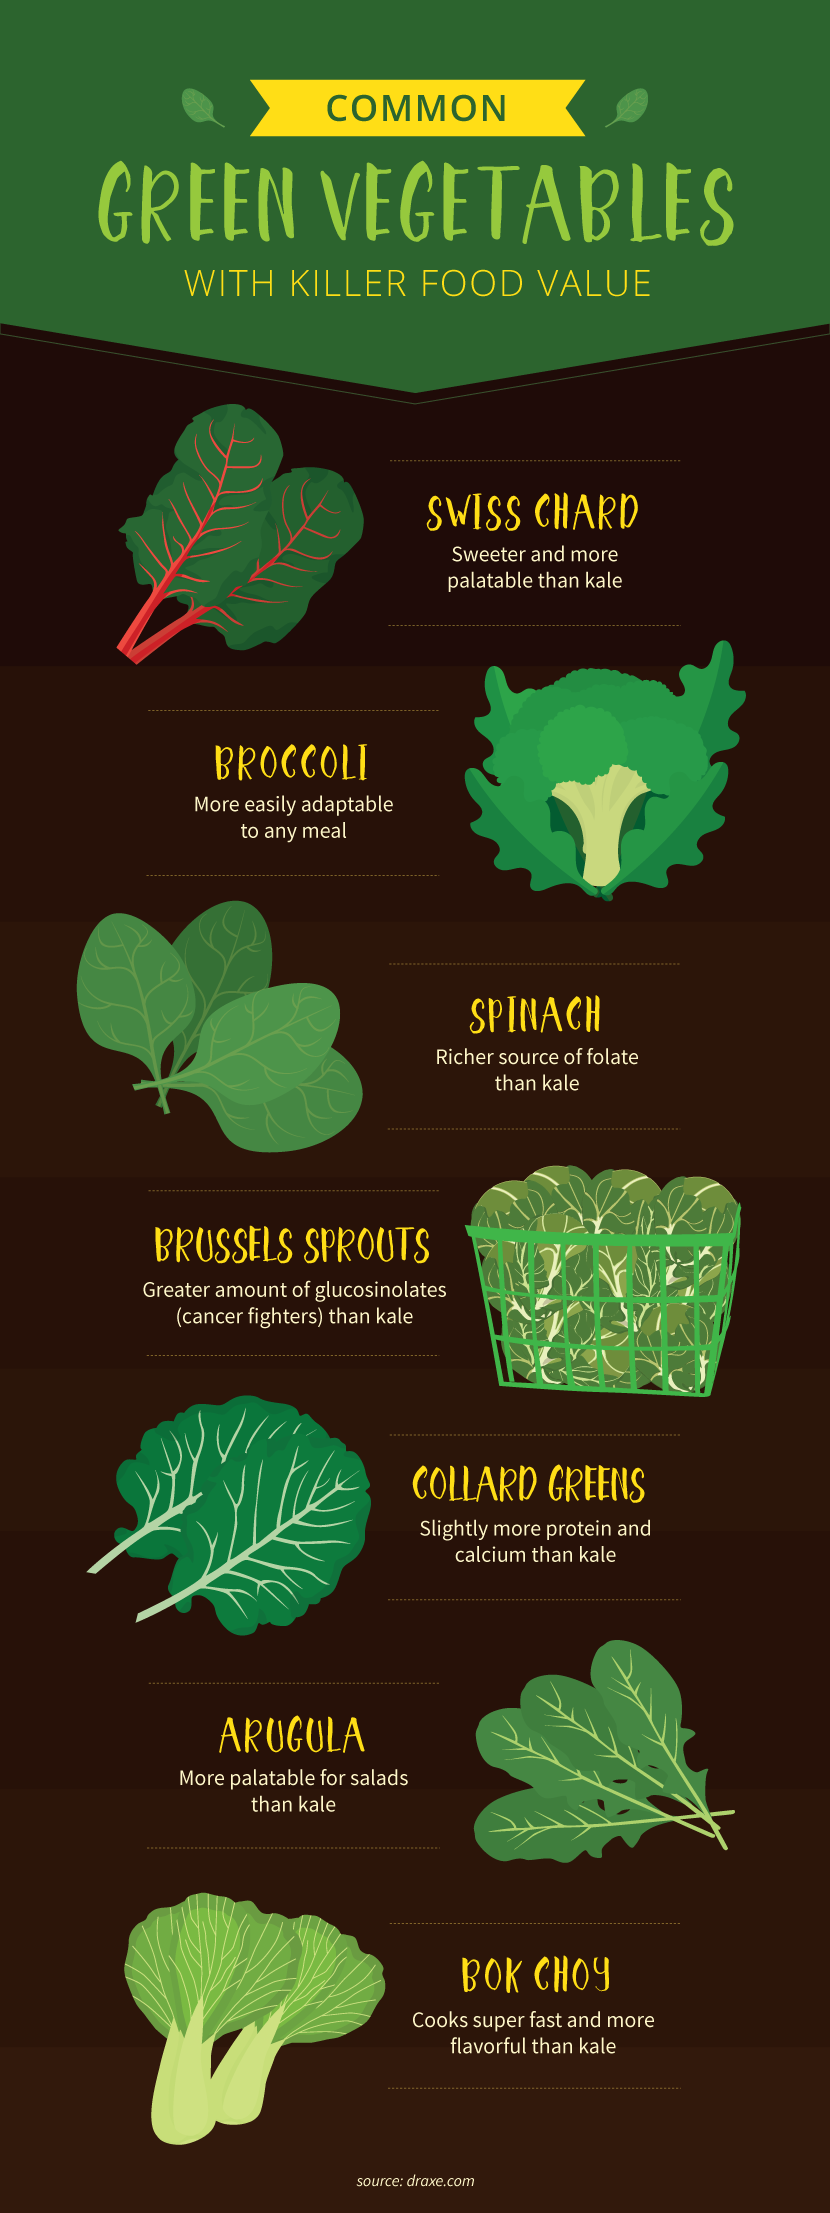 Green Vegetables With Amazing Nutritional Value - Try These Superfood Greens